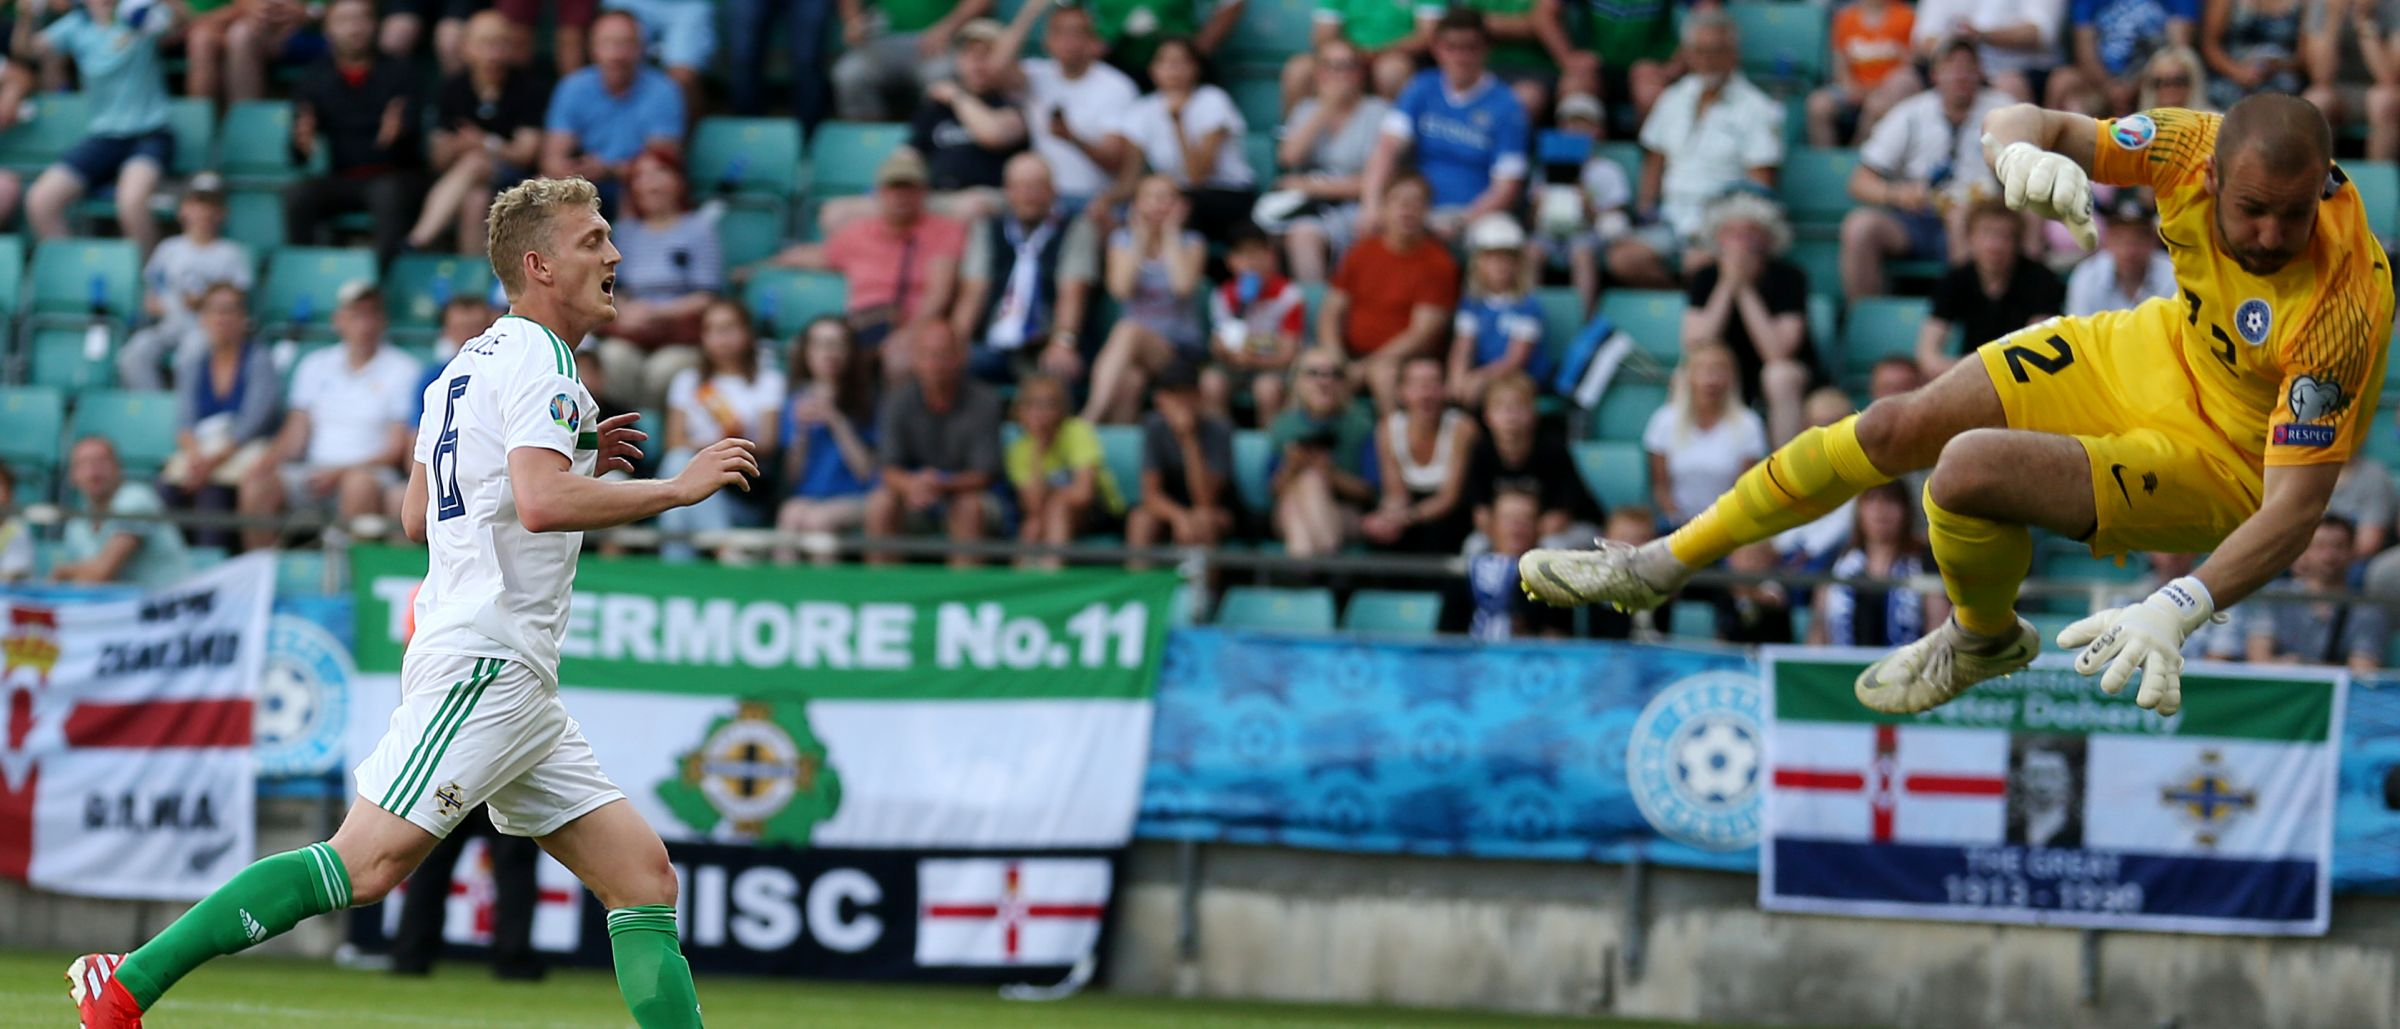 Middlesbrough FC's George Saville, left, playing for Northern Ireland against Estonia